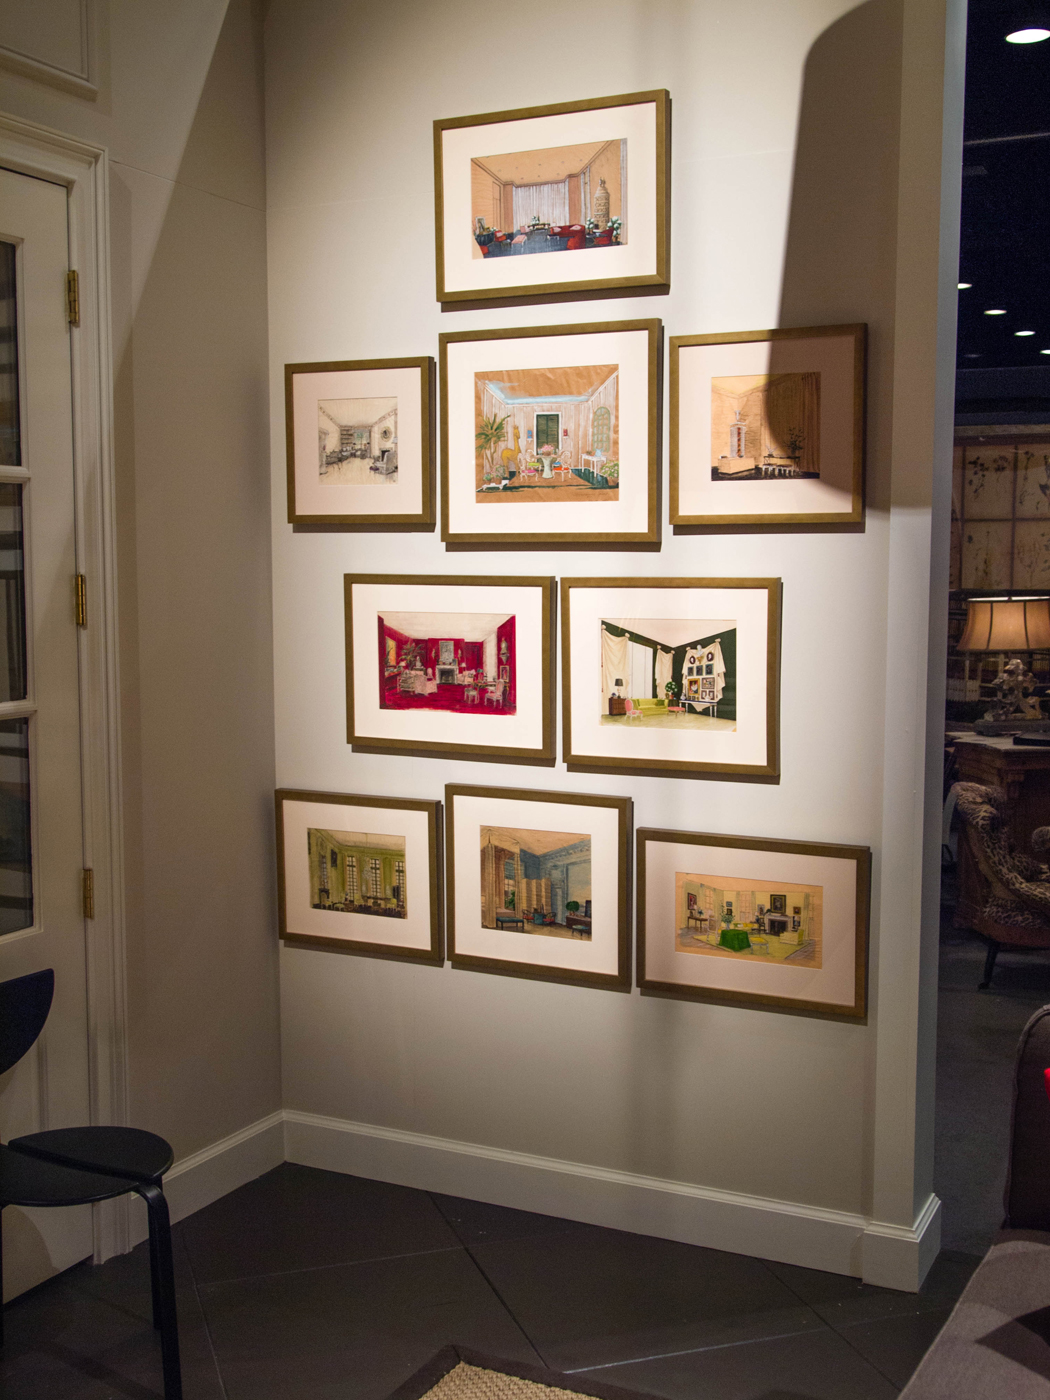 Grouping of framed interiors drawings by Albert Hadley on wall of living room installation | Savage Interior Design